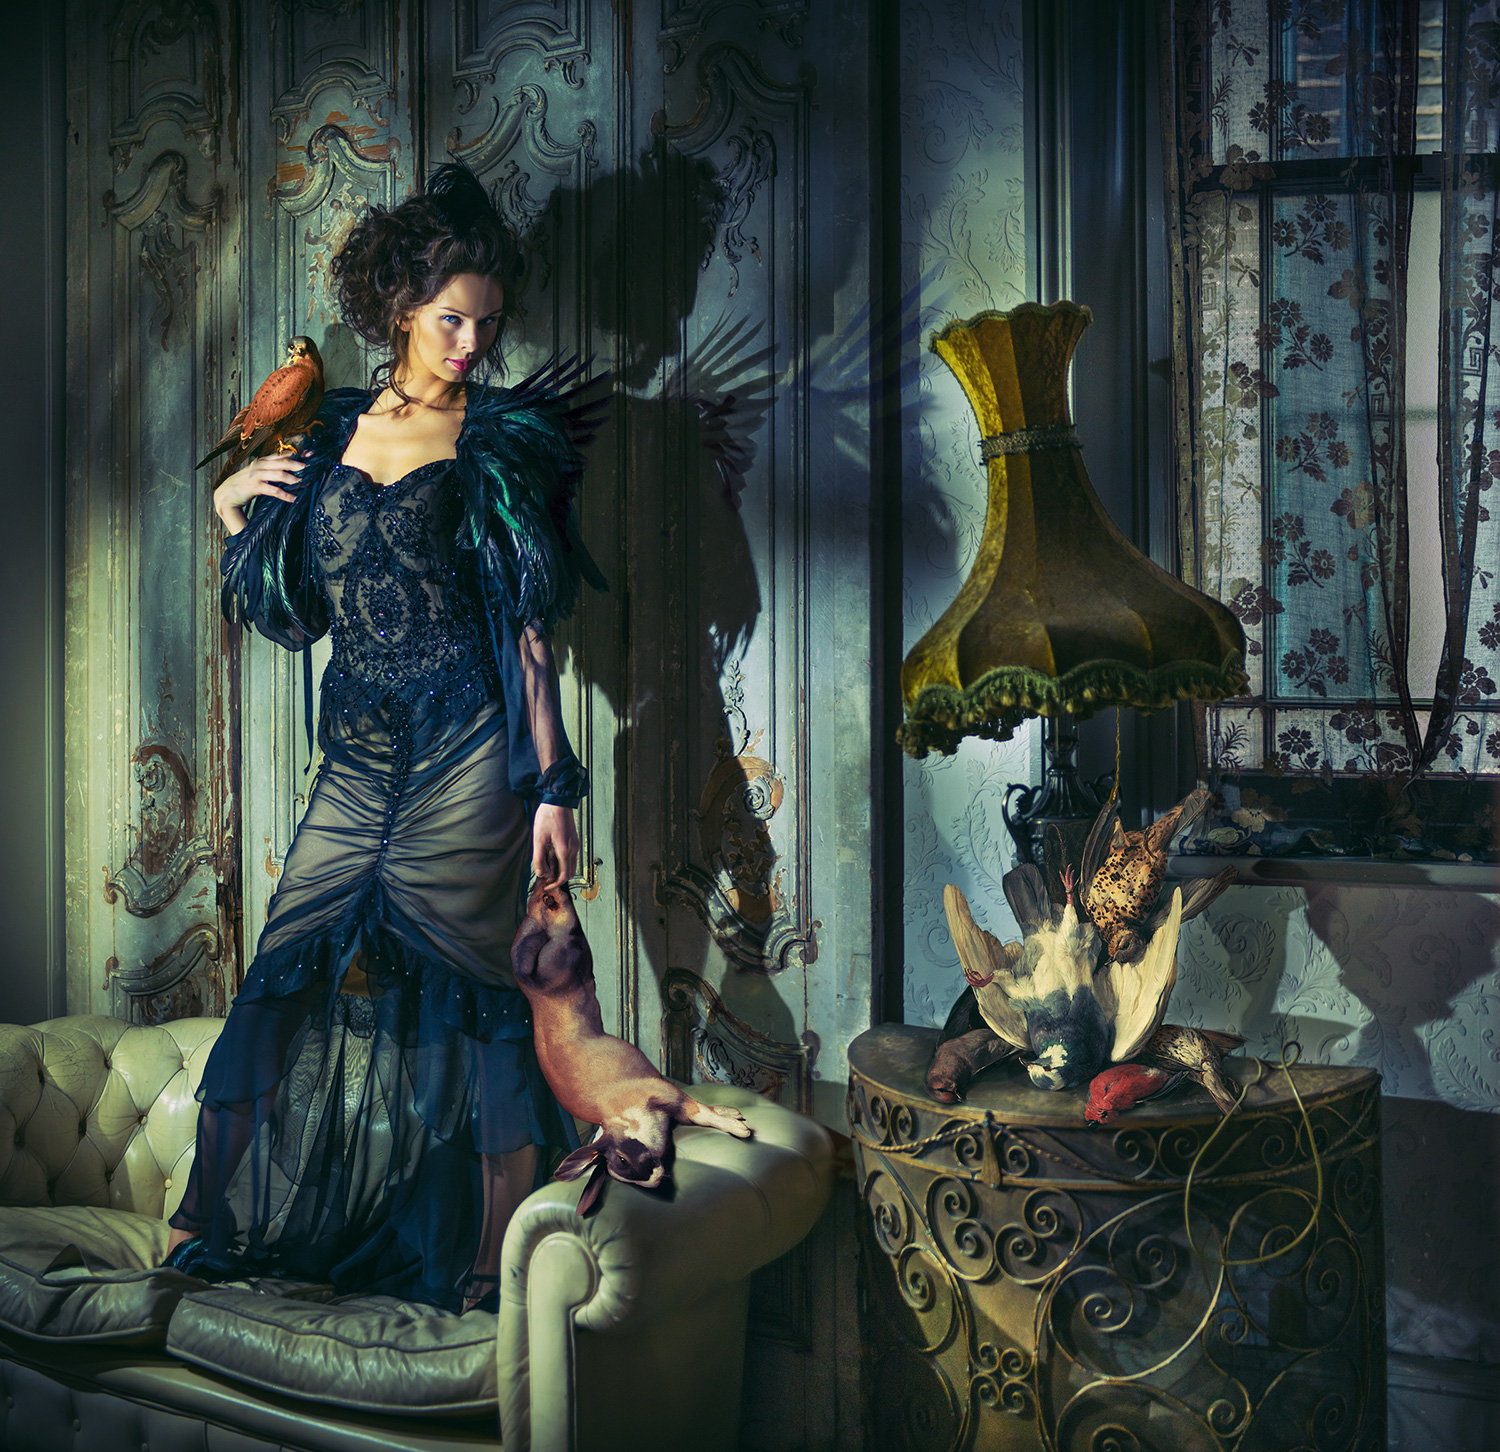 TRUSSED TROPHIES (2013) Rabbit from 'Still life with a dead rabbit and falcon'(1678) by Dirck de Bray. Birds under lamp from 'Still life of game', circa 19th cent by Andreas Lach. Model: Faye Shearwood / Stylist: Minna Attala / Dress: Busardi / Feather & cape: National Theatre Costume Archive / Hair: Doubravka Marcinkova / Make-up: Rhiannon Chalmers / Stylist's assistant: Becky Smith / My assistant: Tim Matthews. Shoot producer: Matt Lennard.